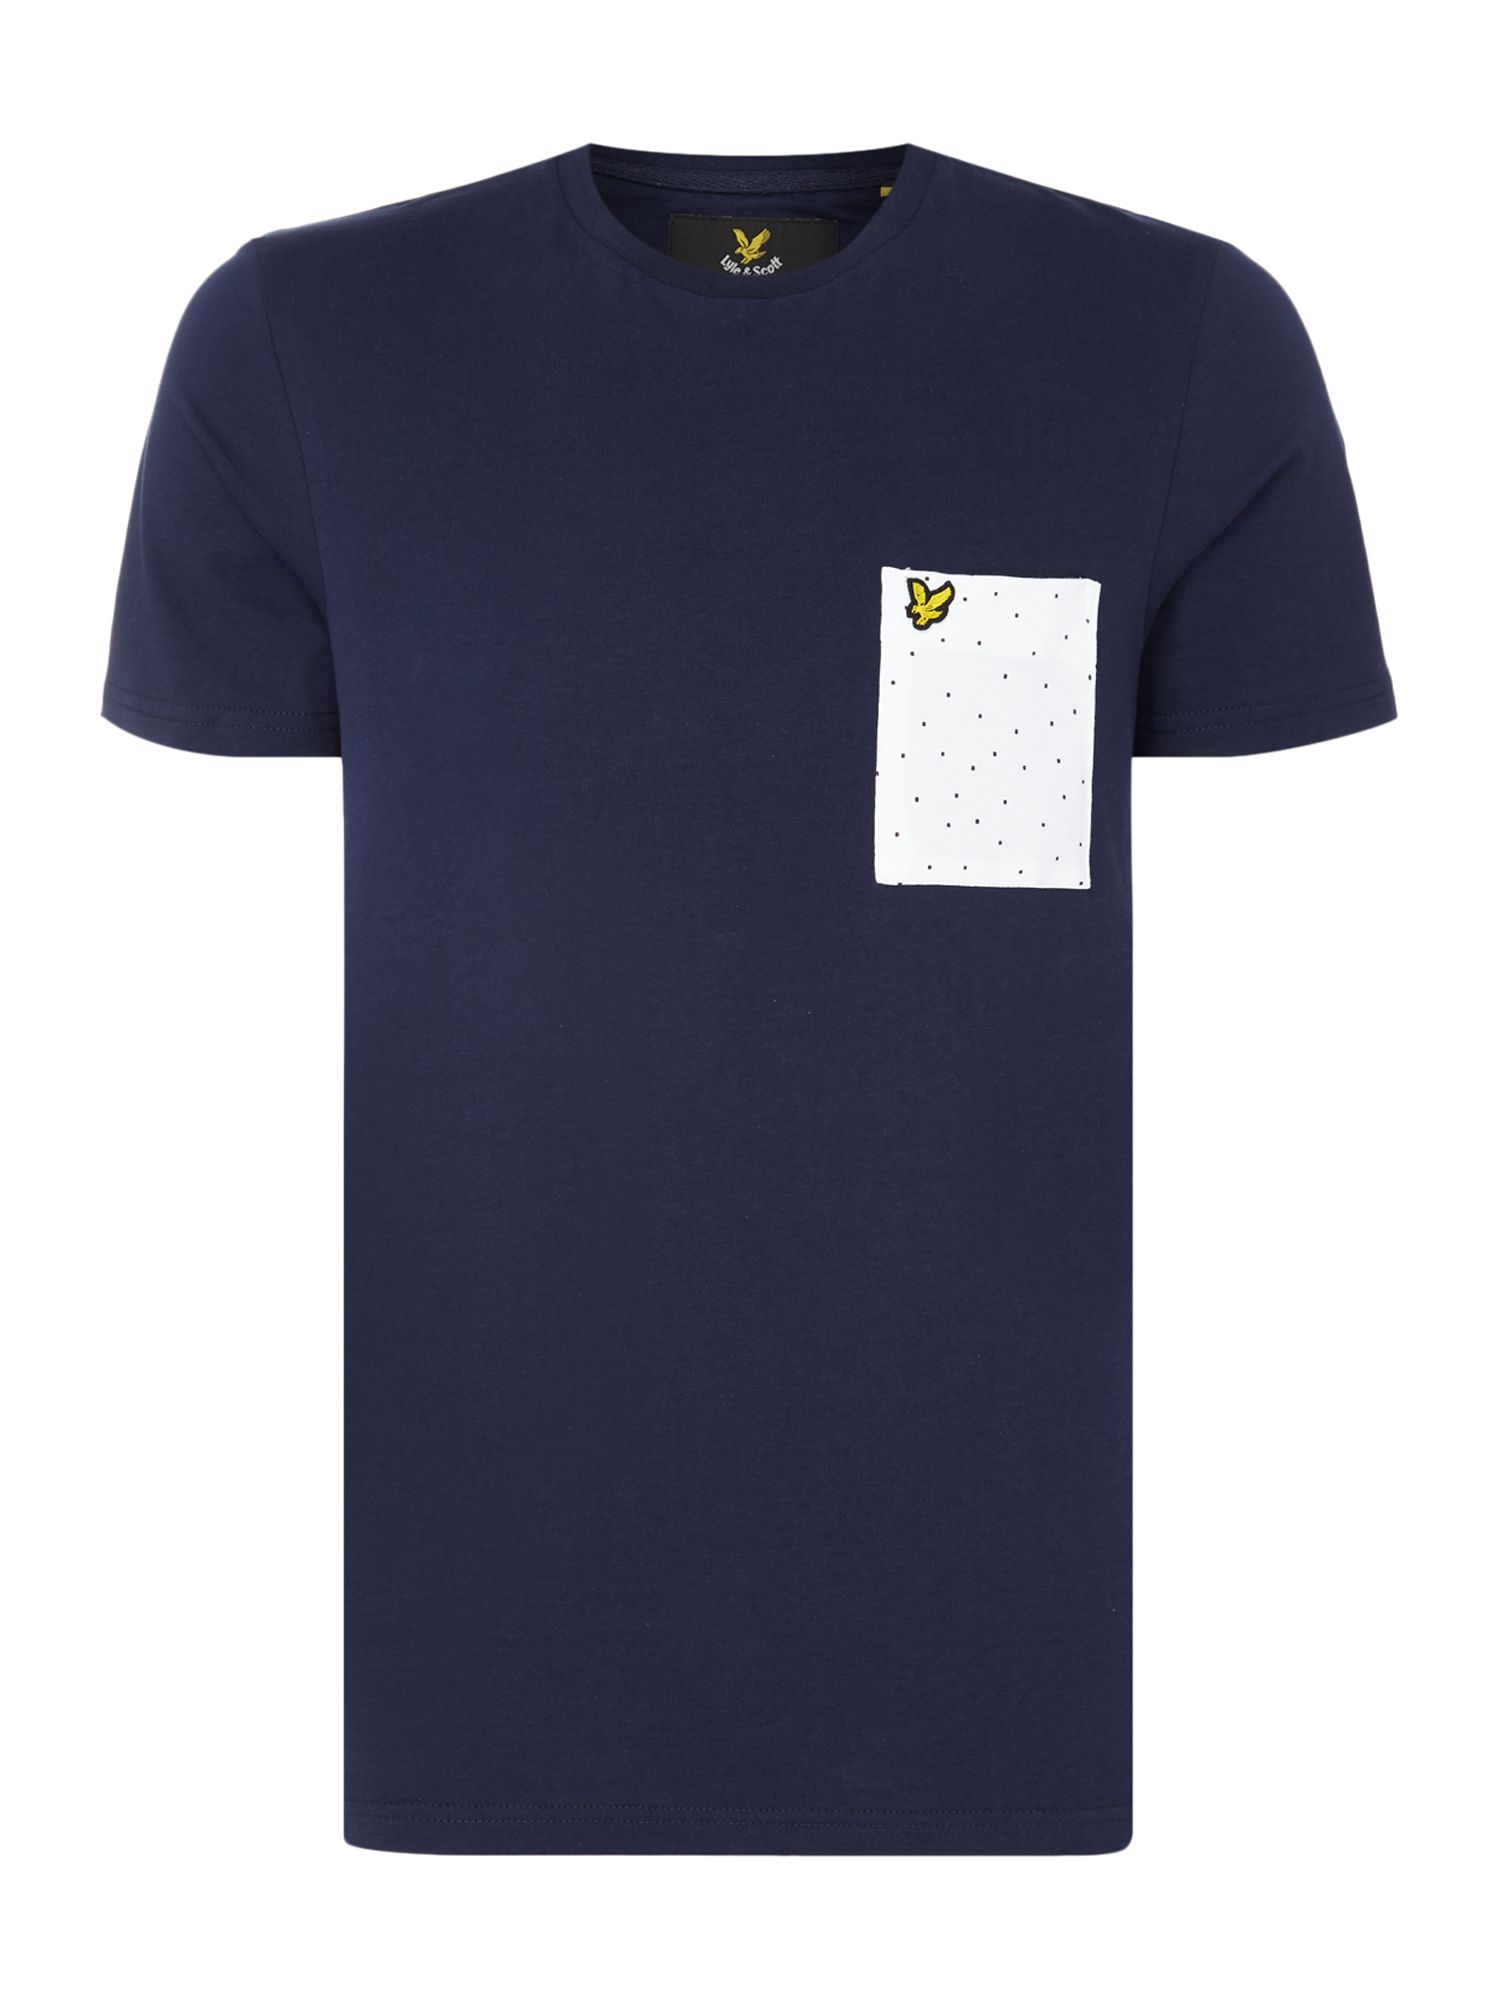 Men's Lyle and Scott Minimal dot pocket crew neck short sleeve t-shirt, Blue